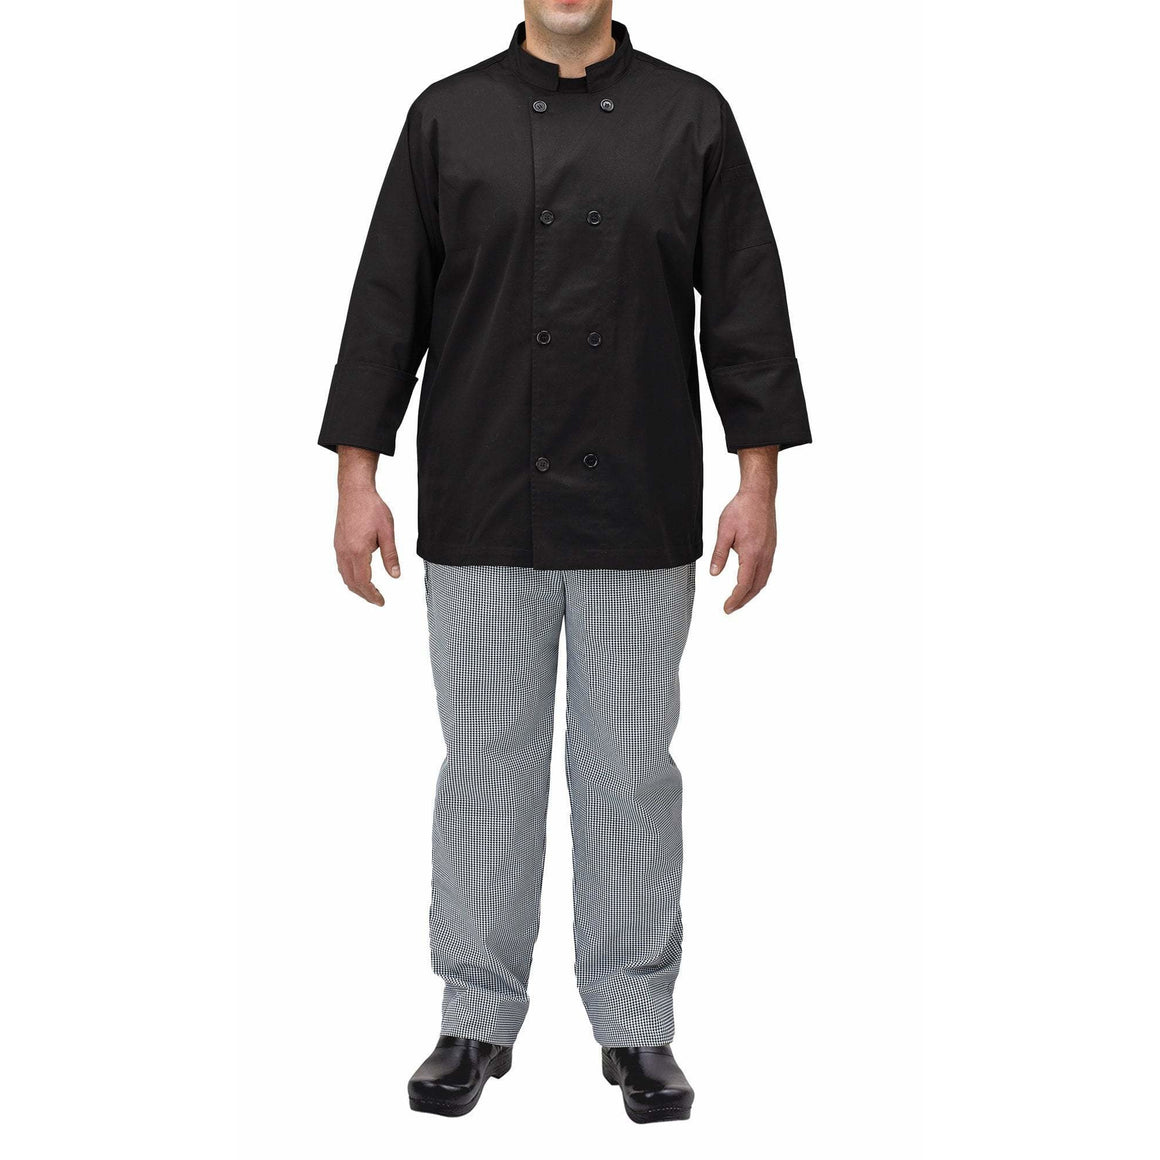 Winco - UNF-5KL - Chef jacket, black, L - Apparel